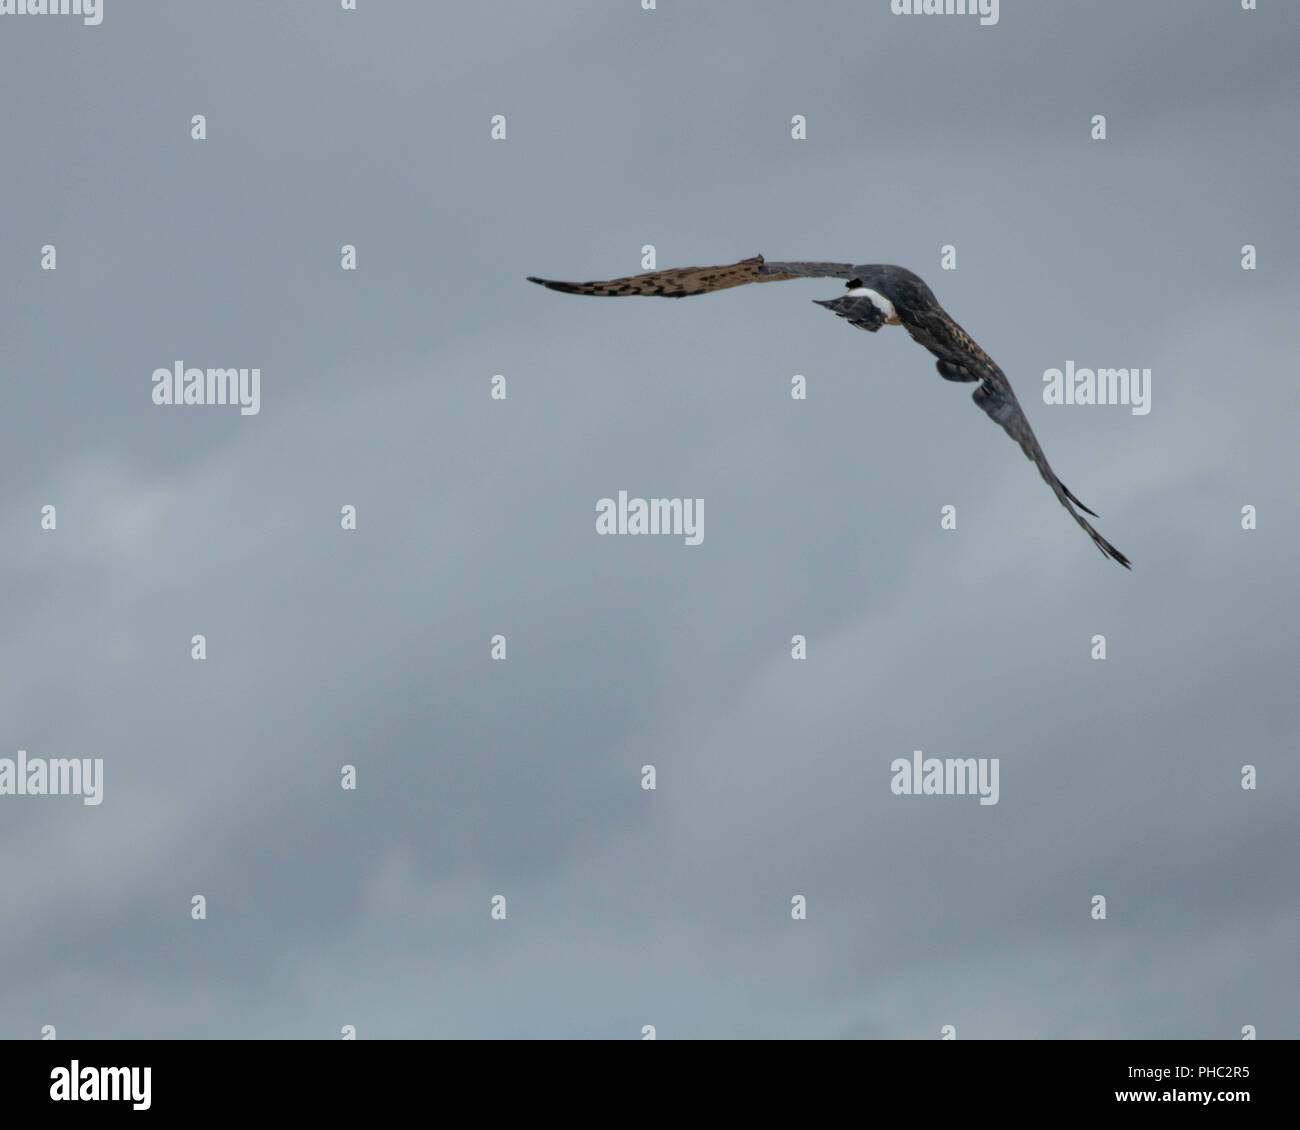 A northern harrier takes to the sky above southeastern Oregon. Stock Photo